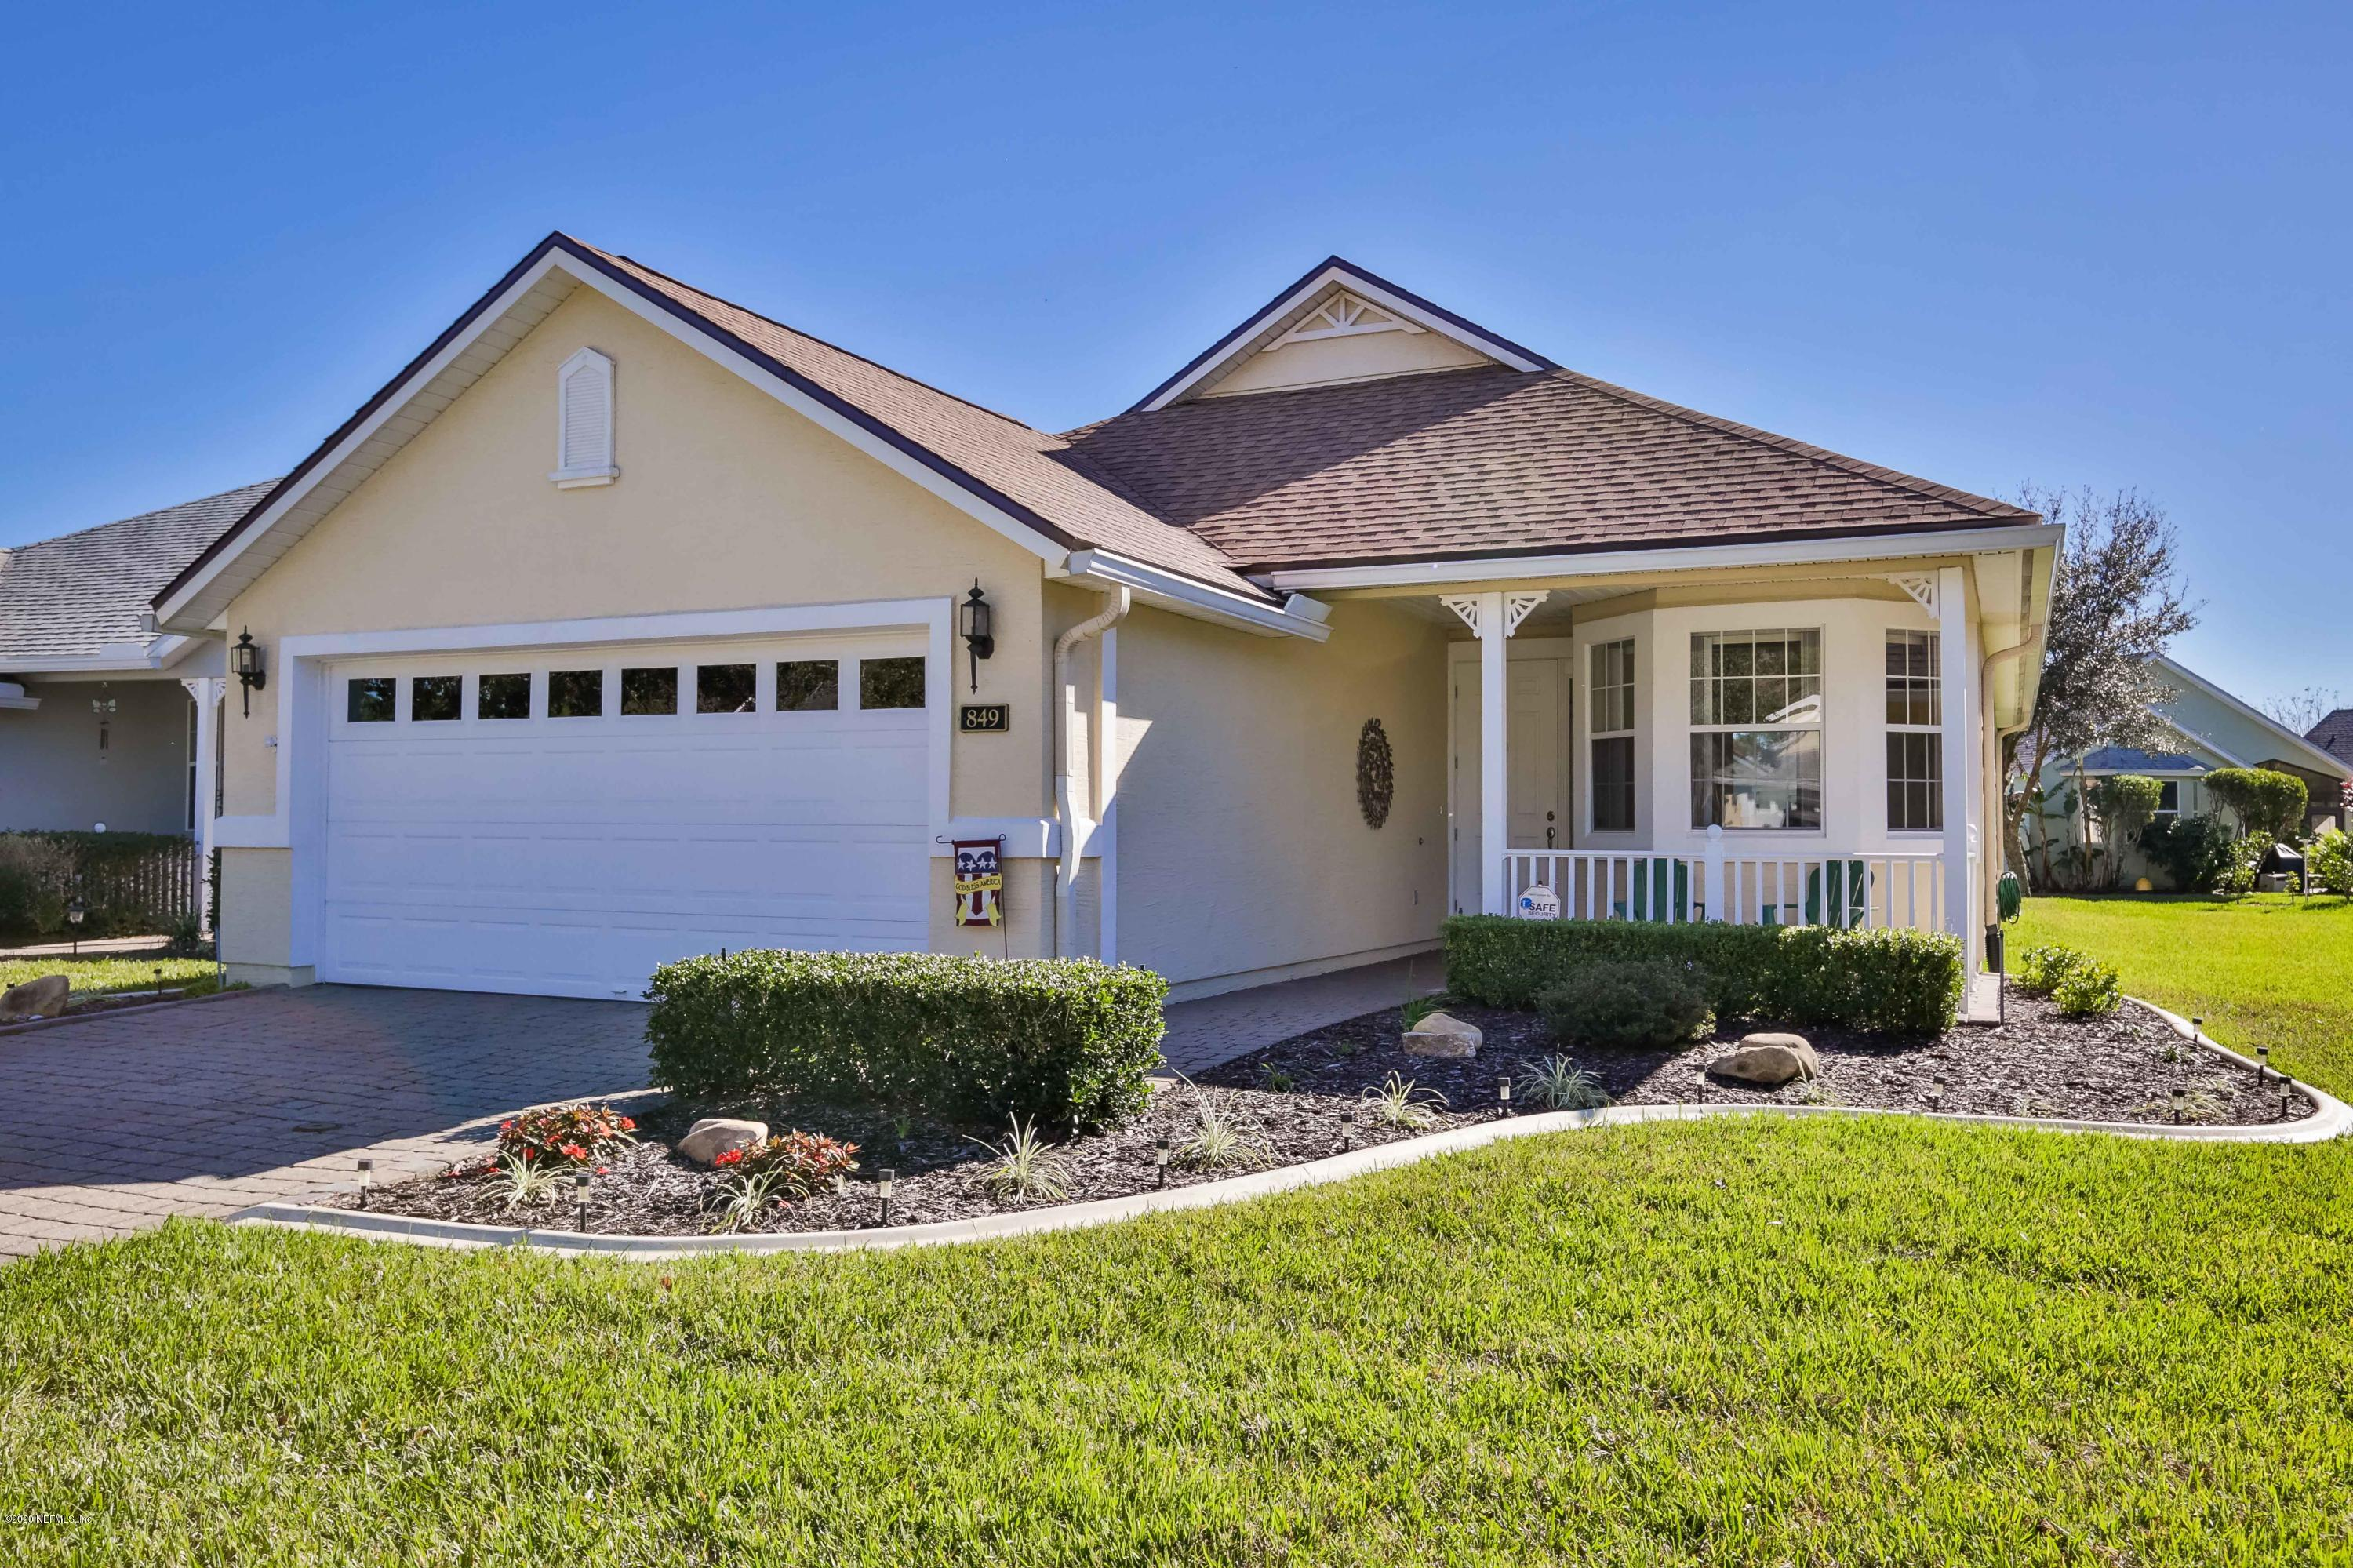 849 COPPERHEAD, ST AUGUSTINE, FLORIDA 32092, 3 Bedrooms Bedrooms, ,2 BathroomsBathrooms,Residential,For sale,COPPERHEAD,1061224